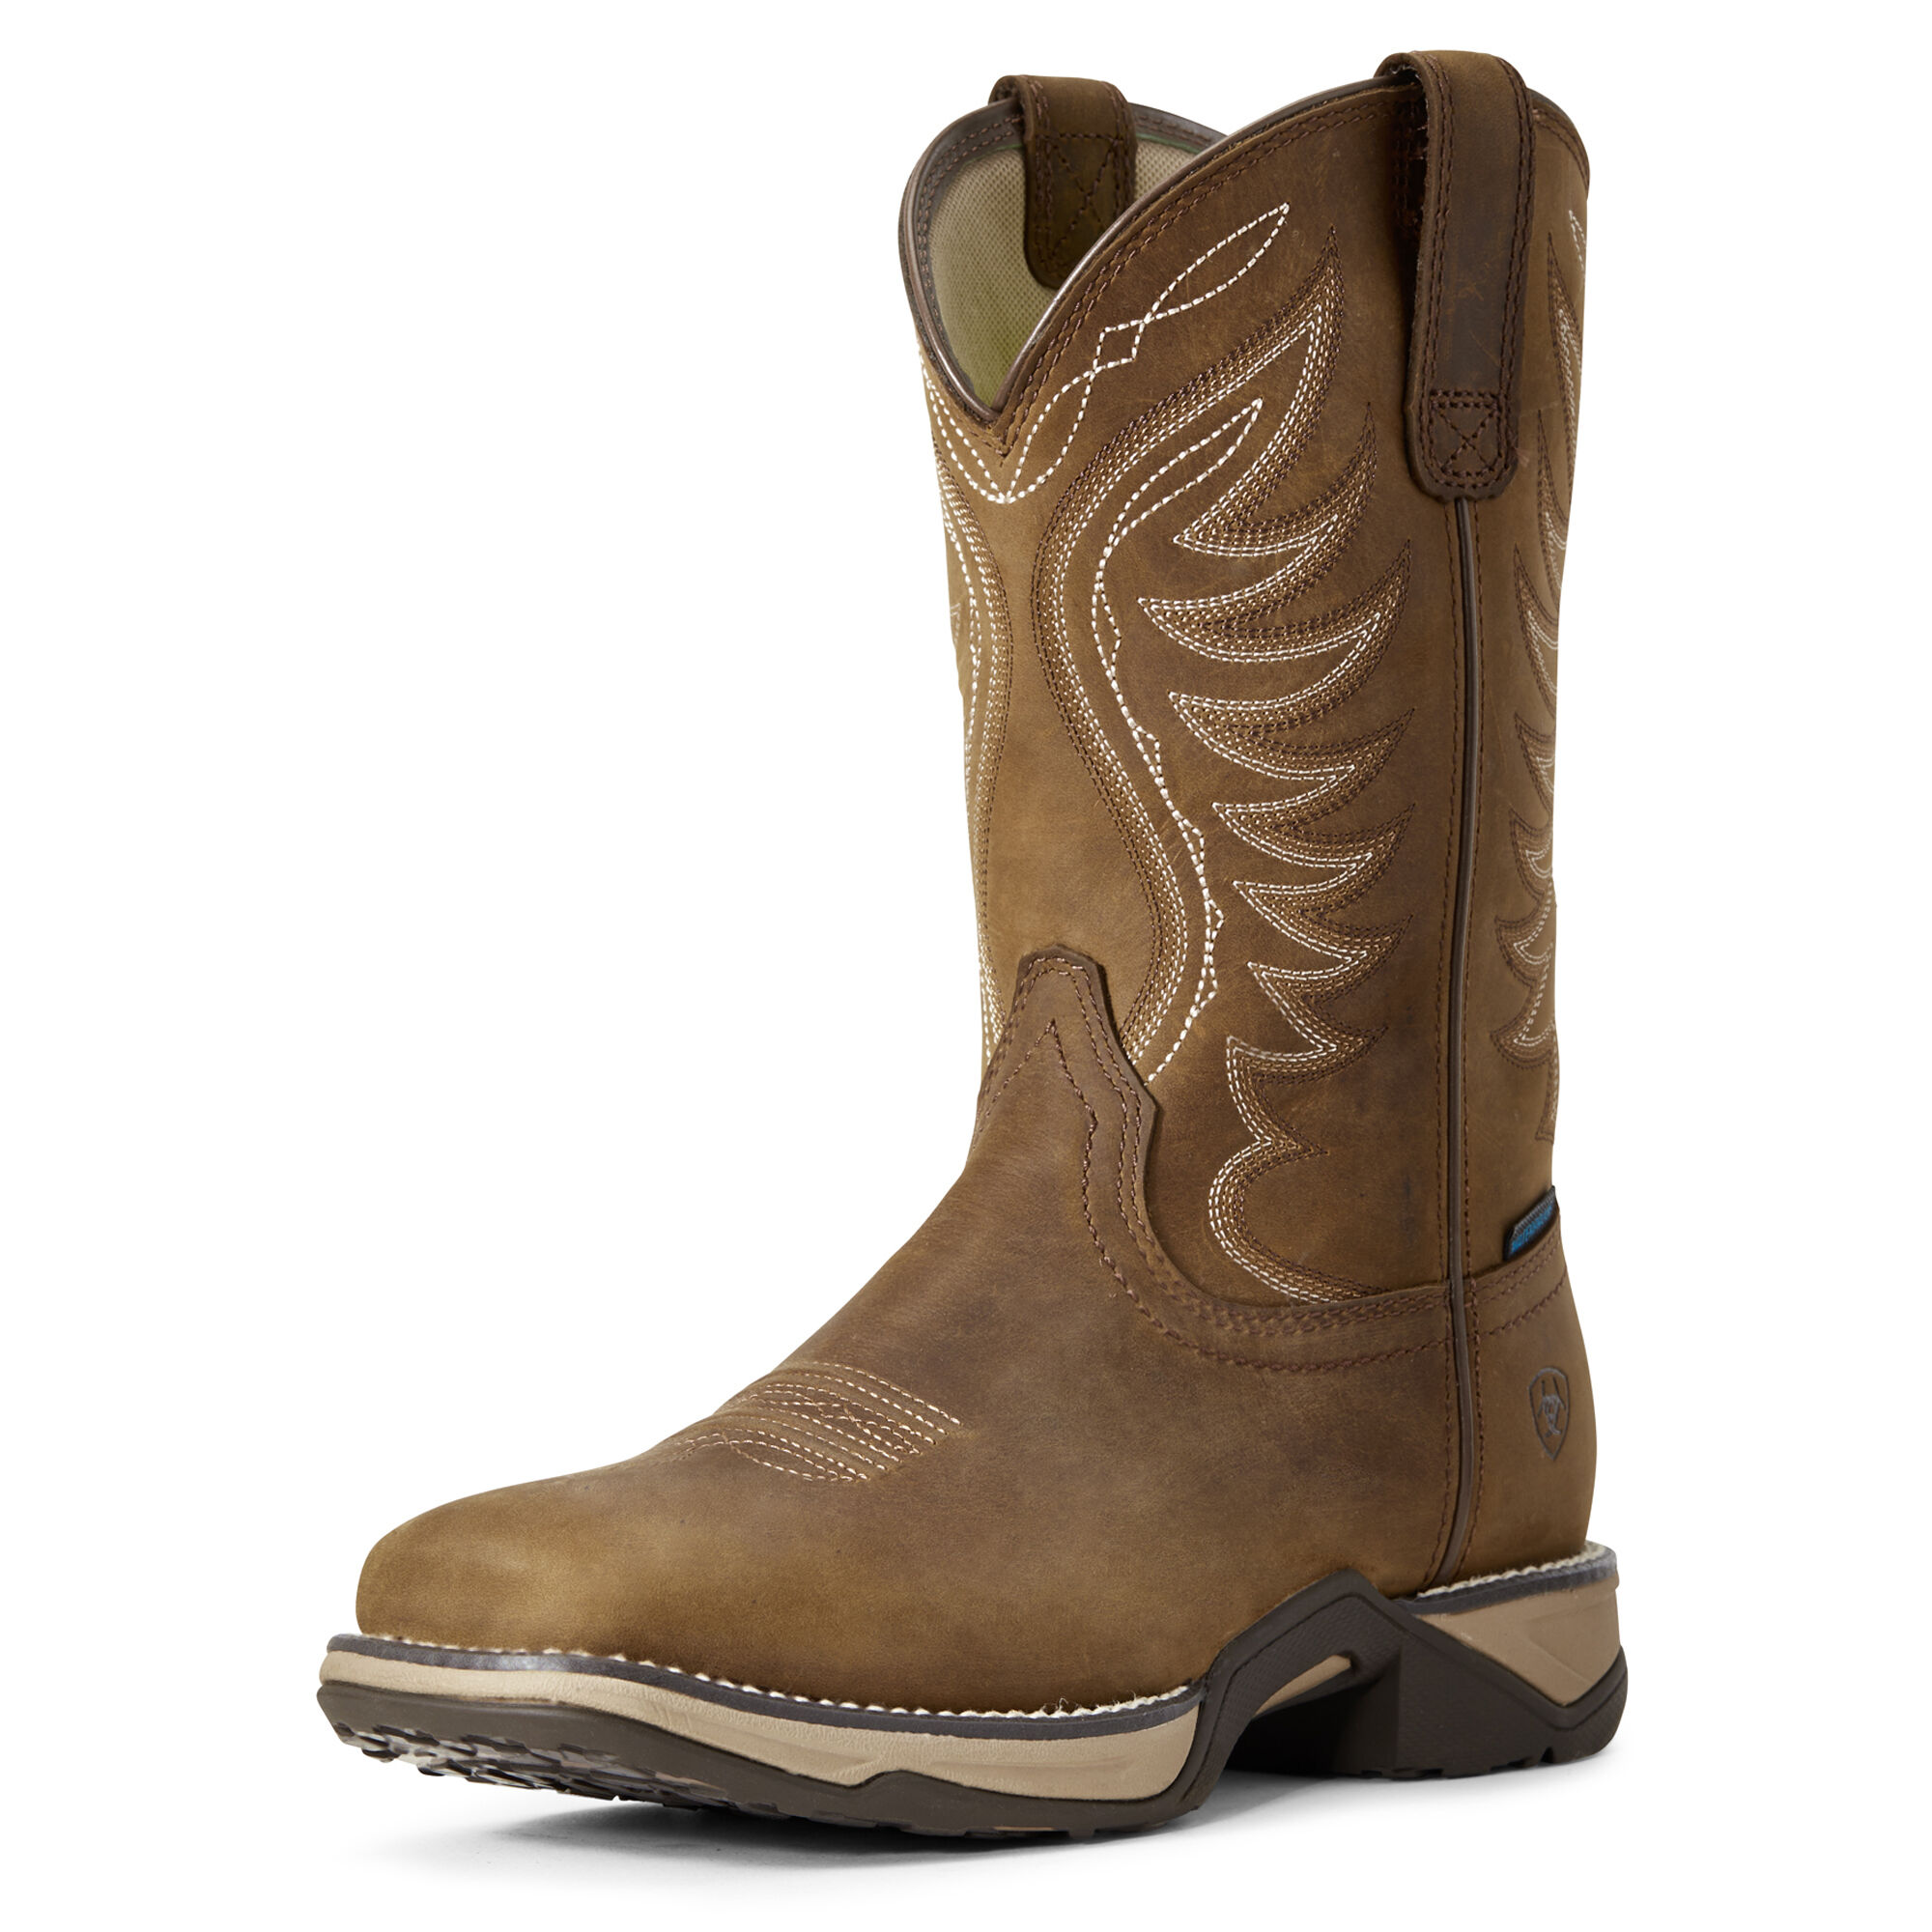 Women's Anthem Waterproof Western Boots in Distressed Brown by Ariat